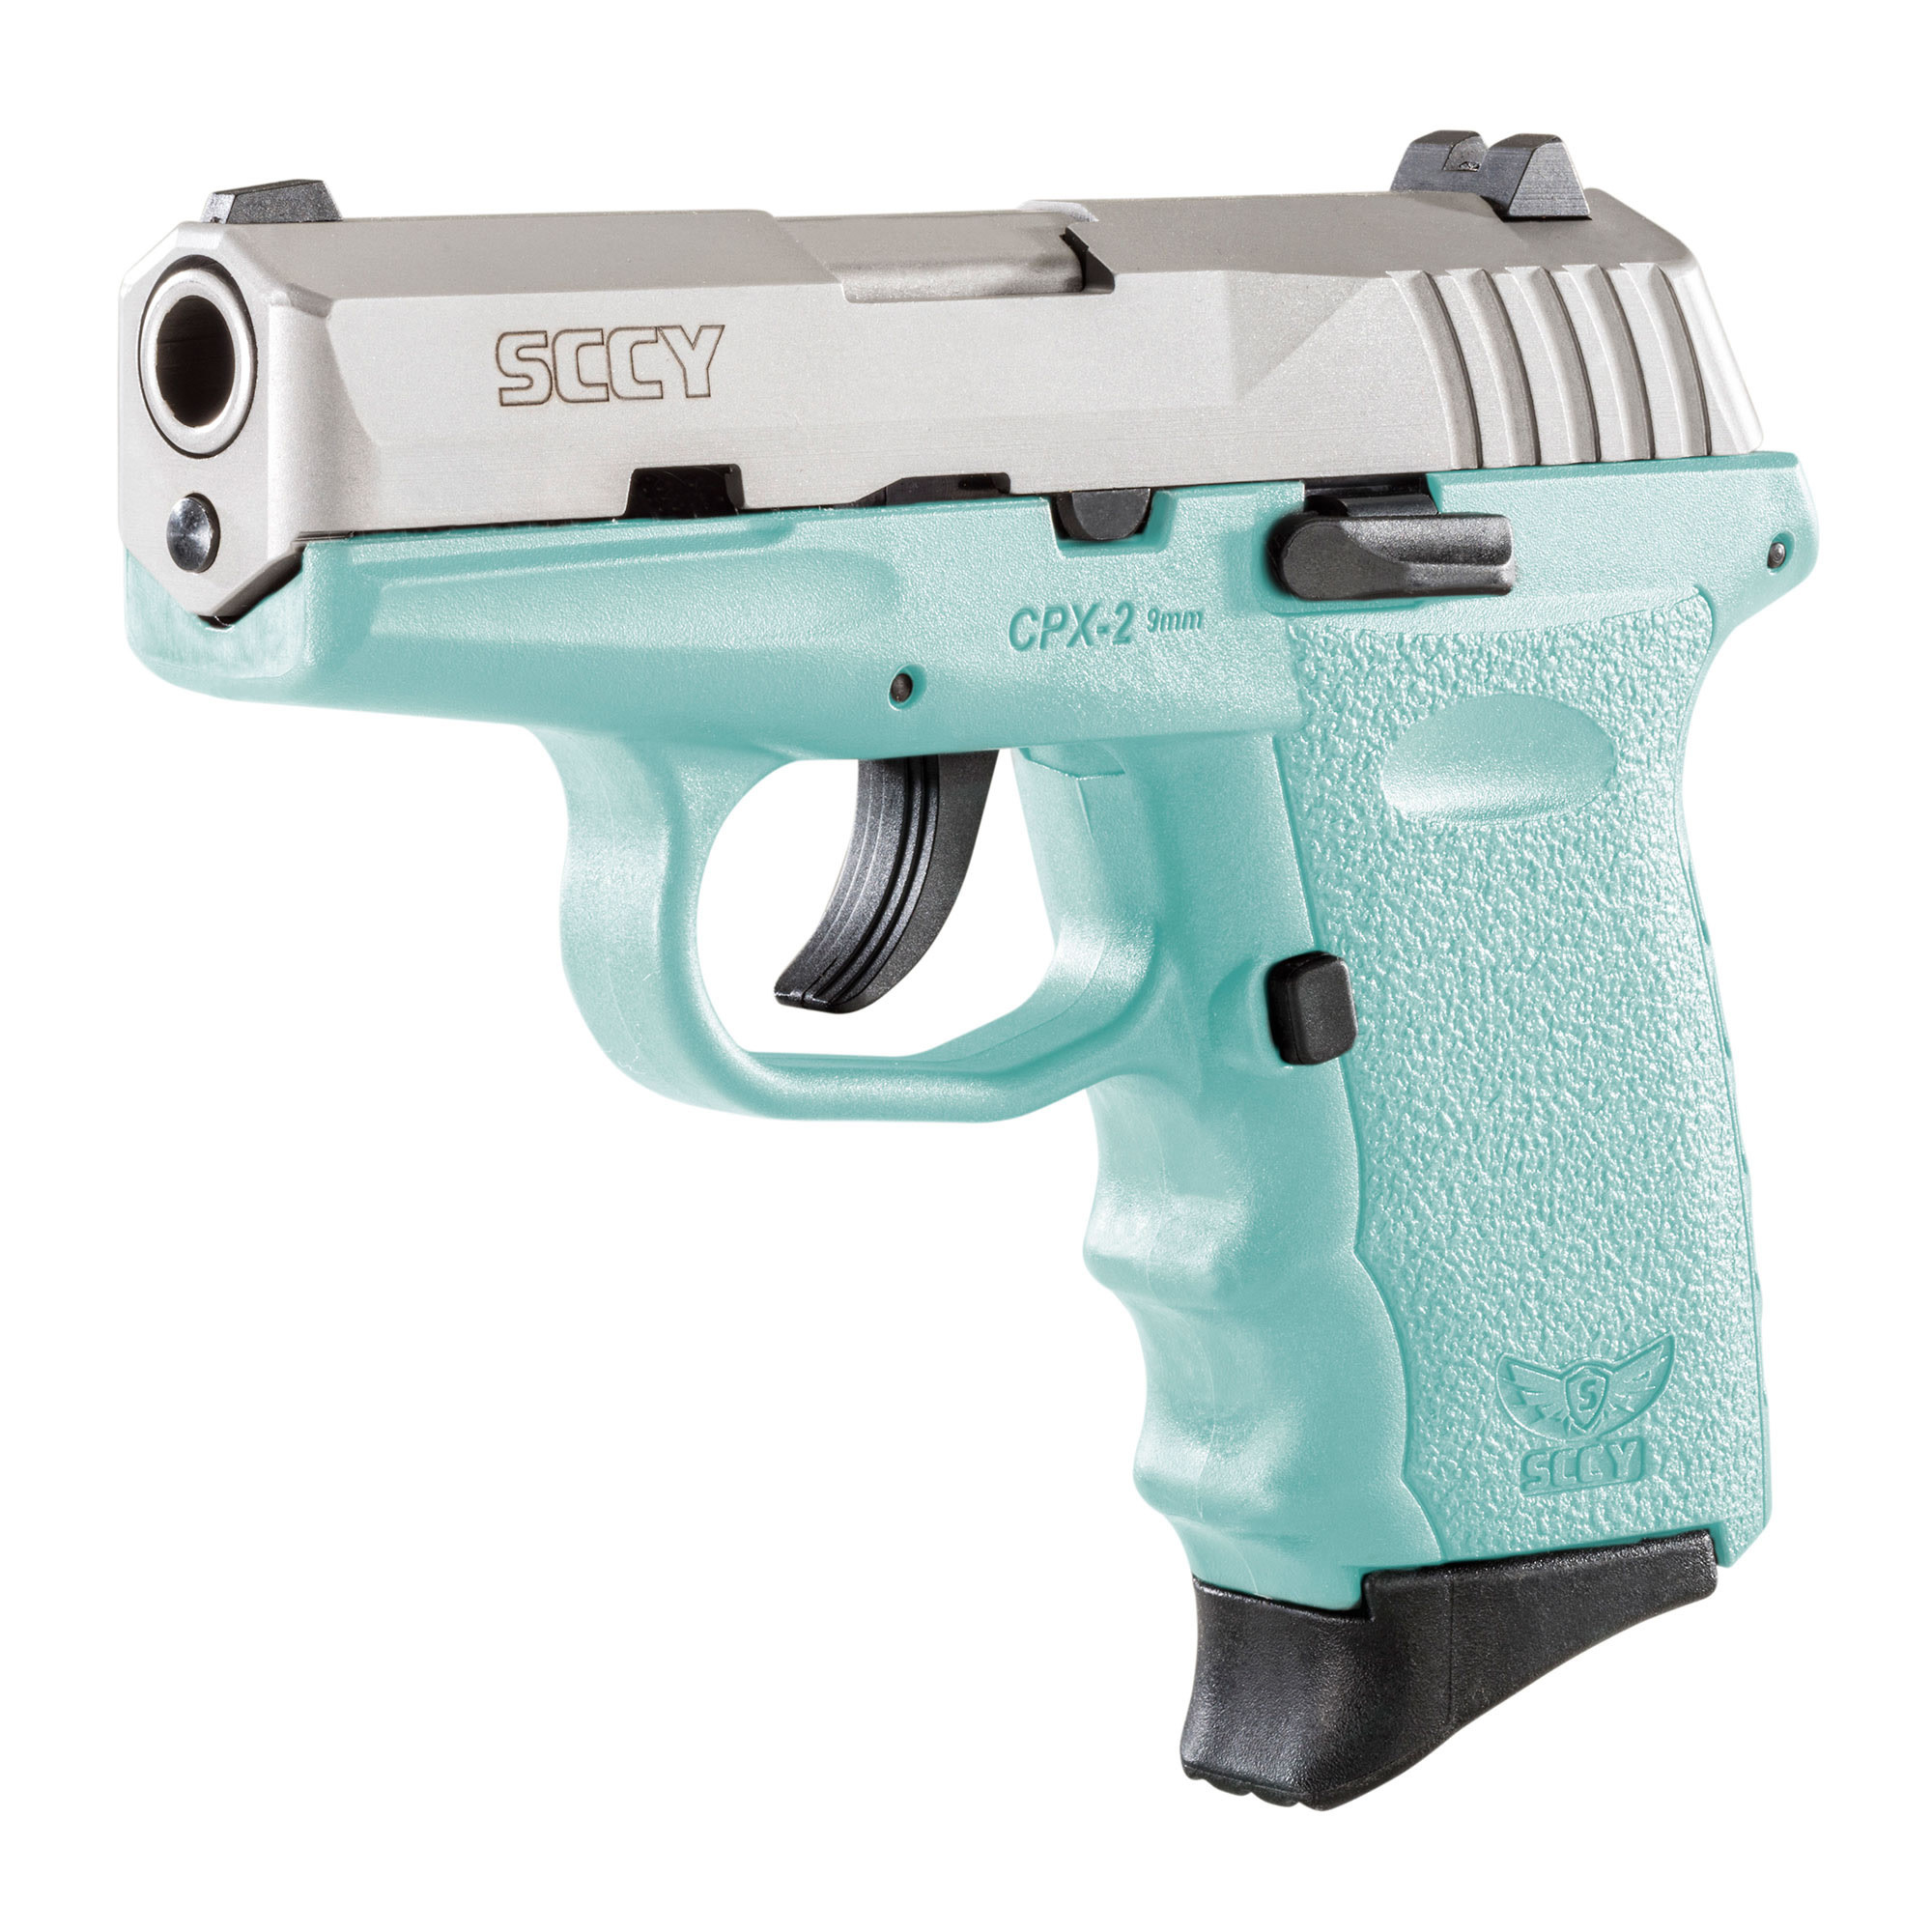 SCCY, CPX-2, Compact, 9mm, robin egg blue w/silver slide10 rd, 2 Magazines